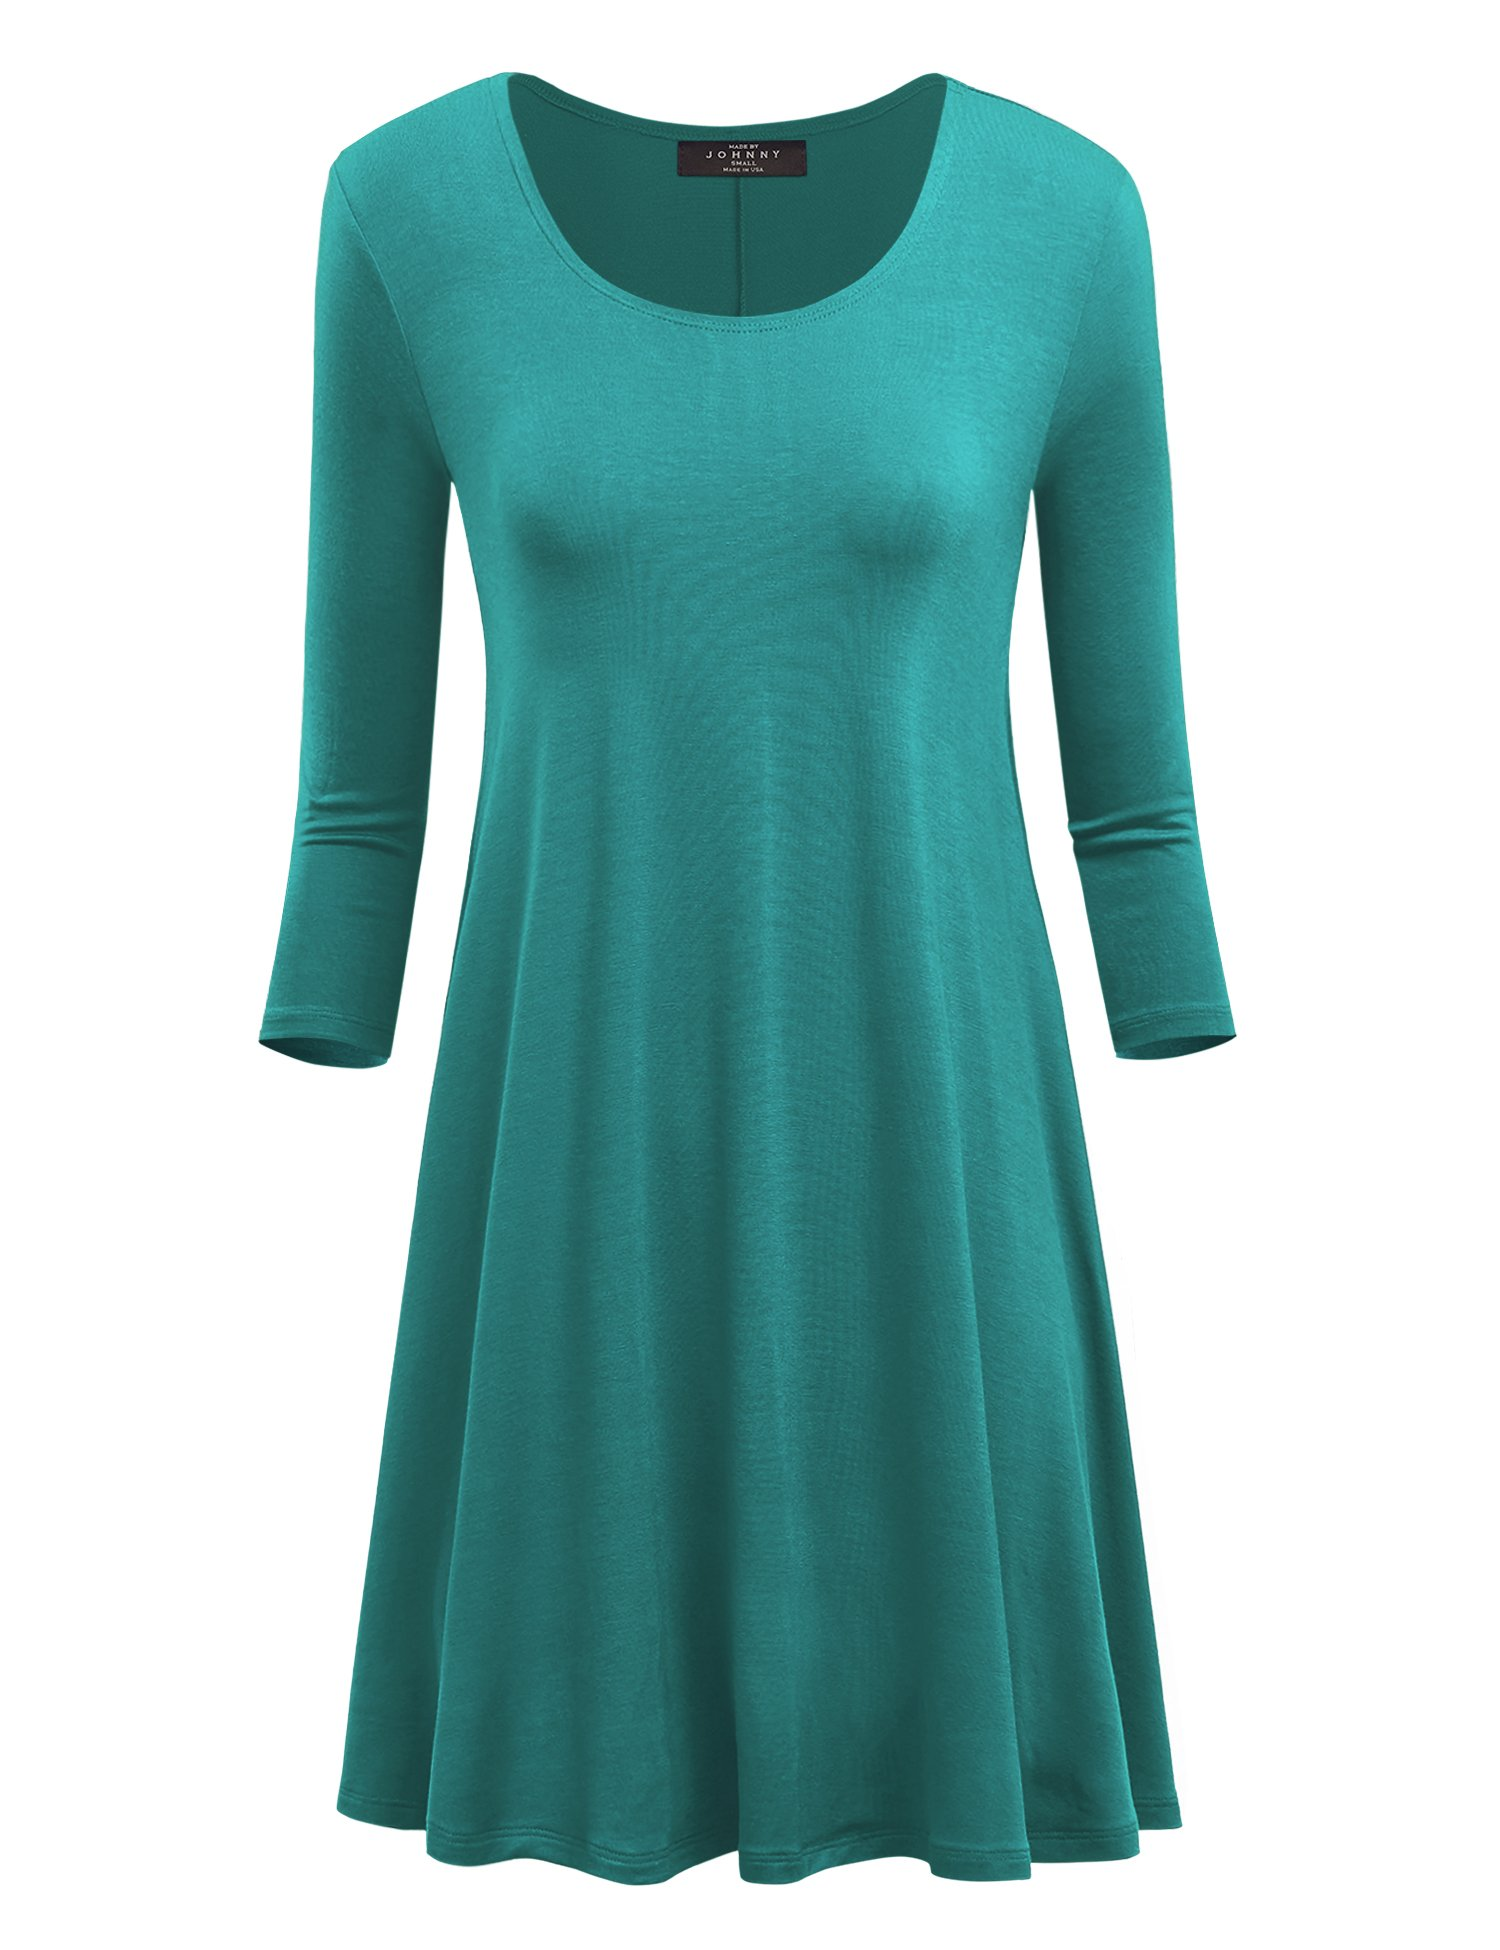 Available at Amazon: MBJ Women's Round Neck 3/4 Sleeves Short Trapeze Dress - Made in USA